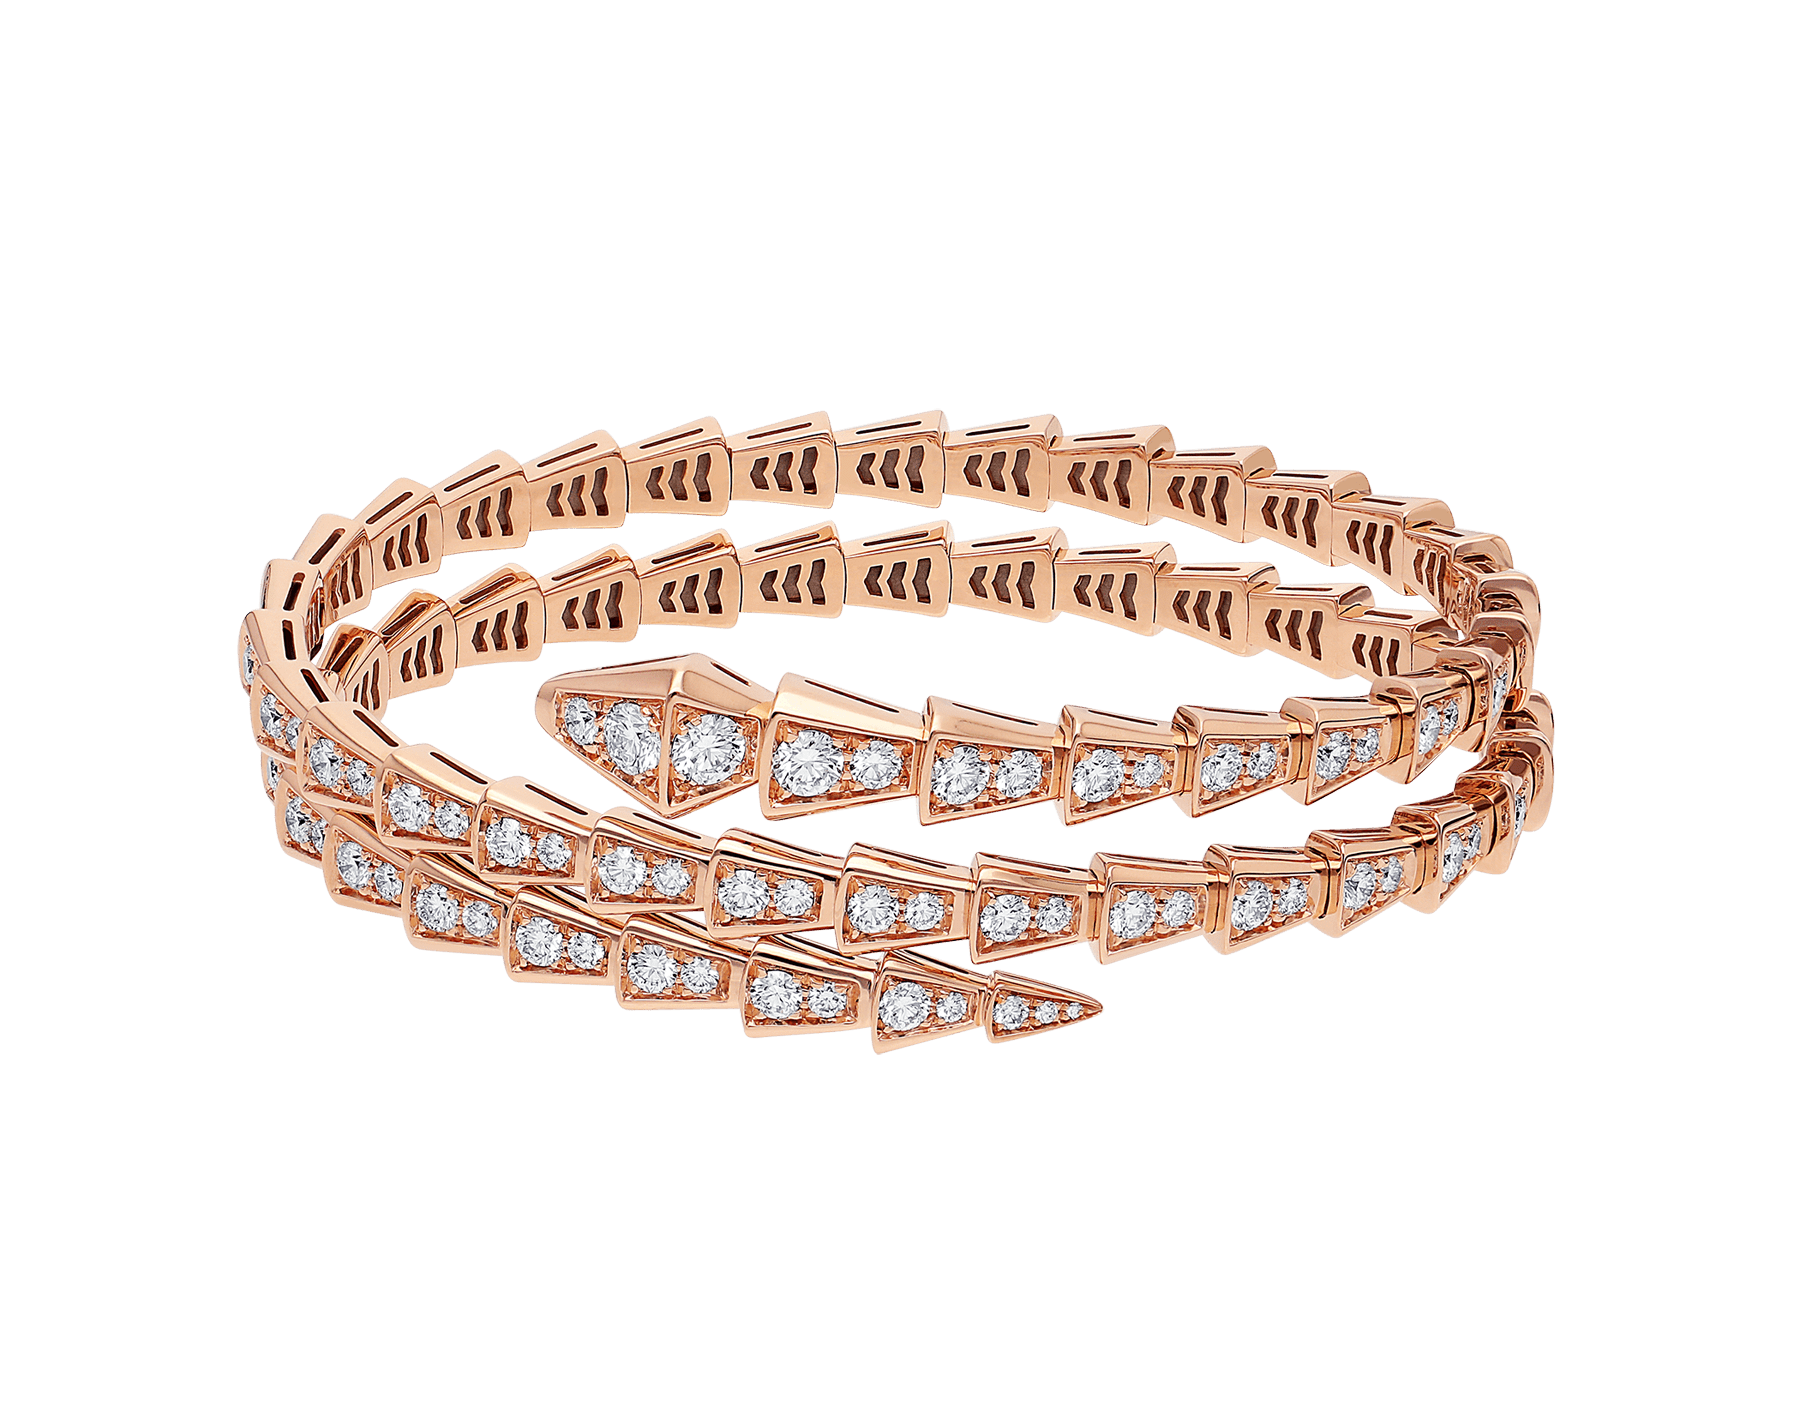 Serpenti Viper two-coil 18 kt rose gold bracelet set with pavé diamonds BR858796 image 2